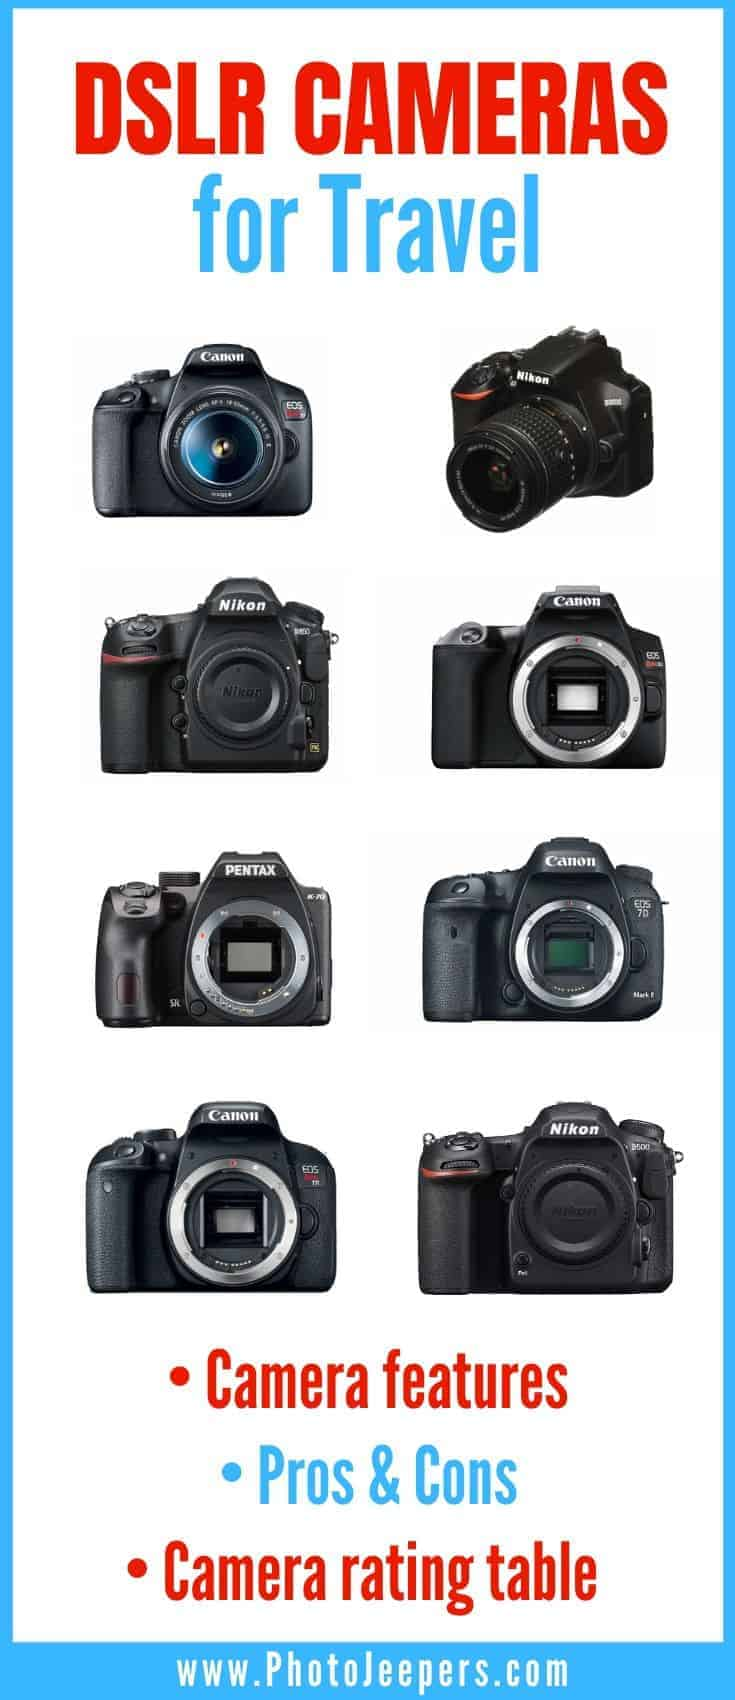 What you'll find in this guide: the 10 best DSLR cameras for travel photographers and bloggers | How to choose the best DSLR camera for travel photography | The essential features of a GOOD travel photography DSLR #photography #cameragear #landscapephotography #photojeepers